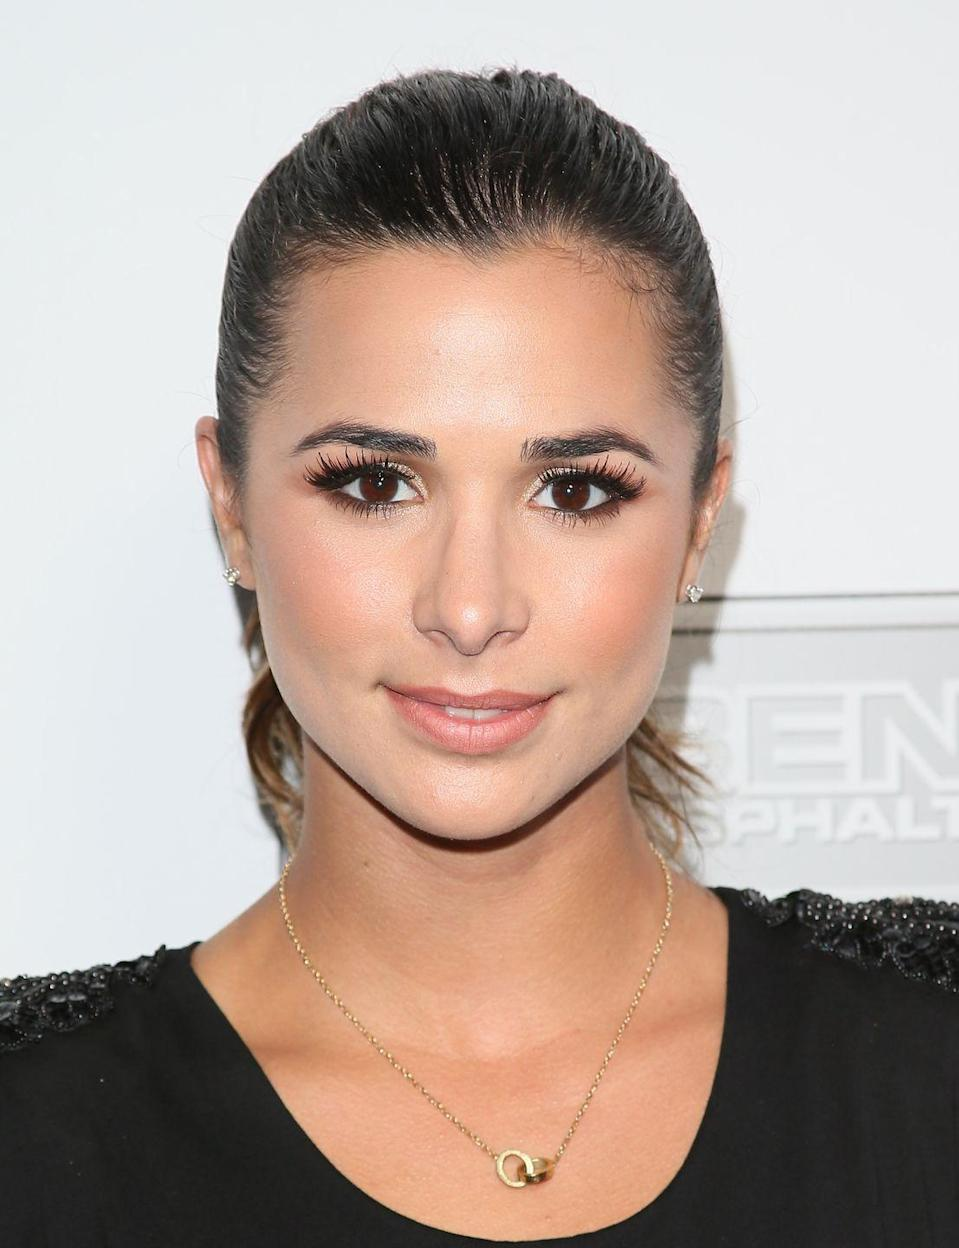 """<p>Loren joined the cast as FBI agent Michelle Vega in season 7. """"Tom (executive producer of <em>The Mentalist</em>) called me the day before I started shooting the very first episode, and he let me know what was in store for Vega, and in that phone call, he also laid out her storyline for me,"""" the actress revealed to <em><a href=""""https://www.hollywoodreporter.com/live-feed/mentalist-michelle-vega-dies-769728"""" rel=""""nofollow noopener"""" target=""""_blank"""" data-ylk=""""slk:The Hollywood Reporter"""" class=""""link rapid-noclick-resp"""">The Hollywood Reporter</a></em>. """"So I knew everything that was going to happen before I stepped on the set.""""</p>"""